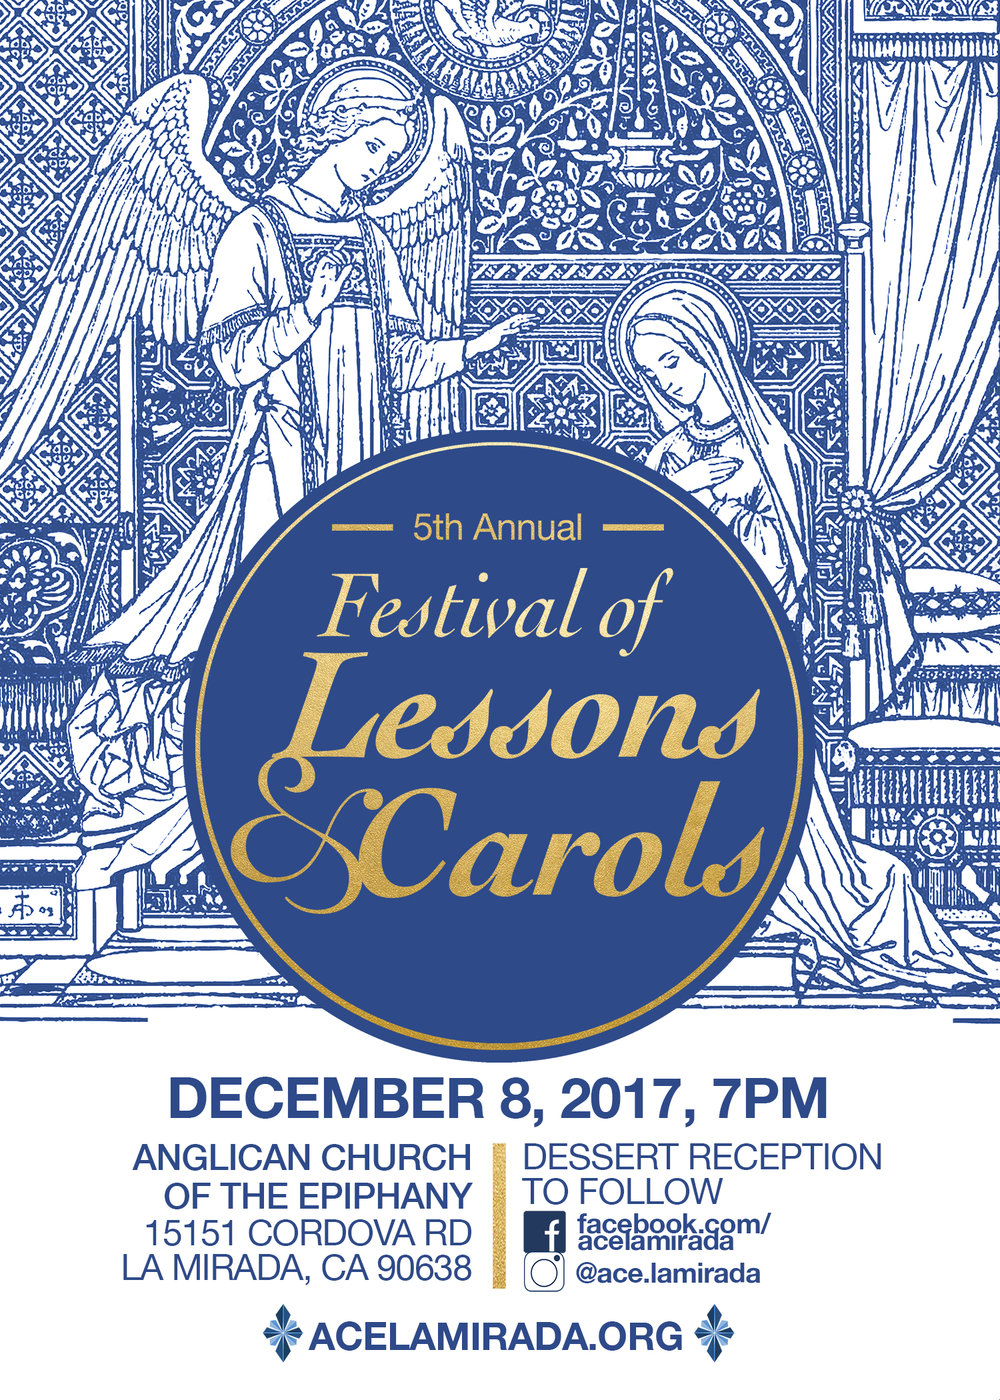 Join us for Lessons and Carols! - Friday, December 8 at 7:00pm